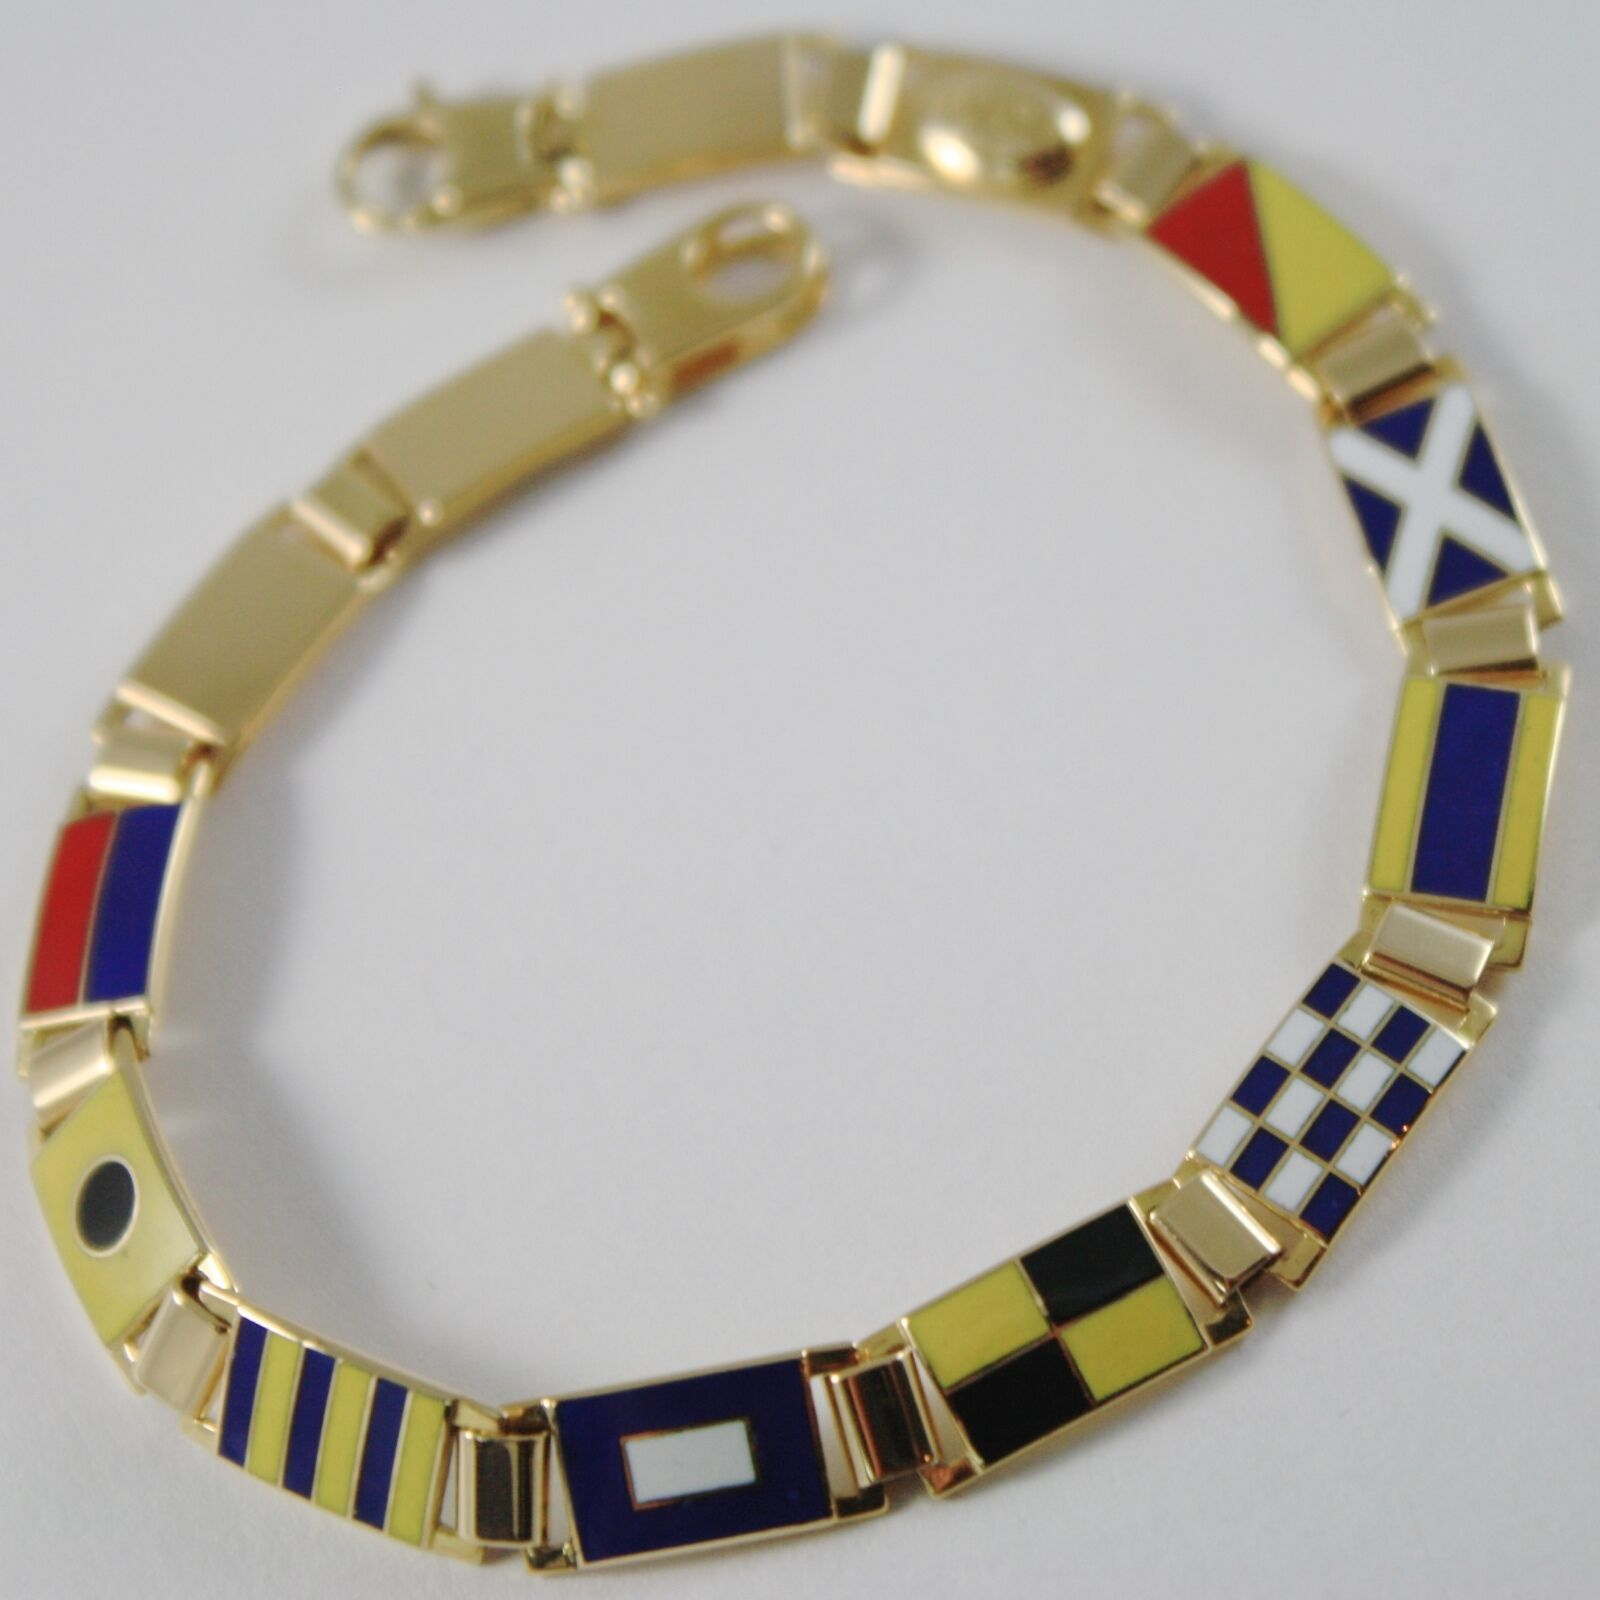 Bracelet Yellow Gold 750 18K, Flags Nautical 6.5 mm, Glazed Tiles, Made in Italy image 1